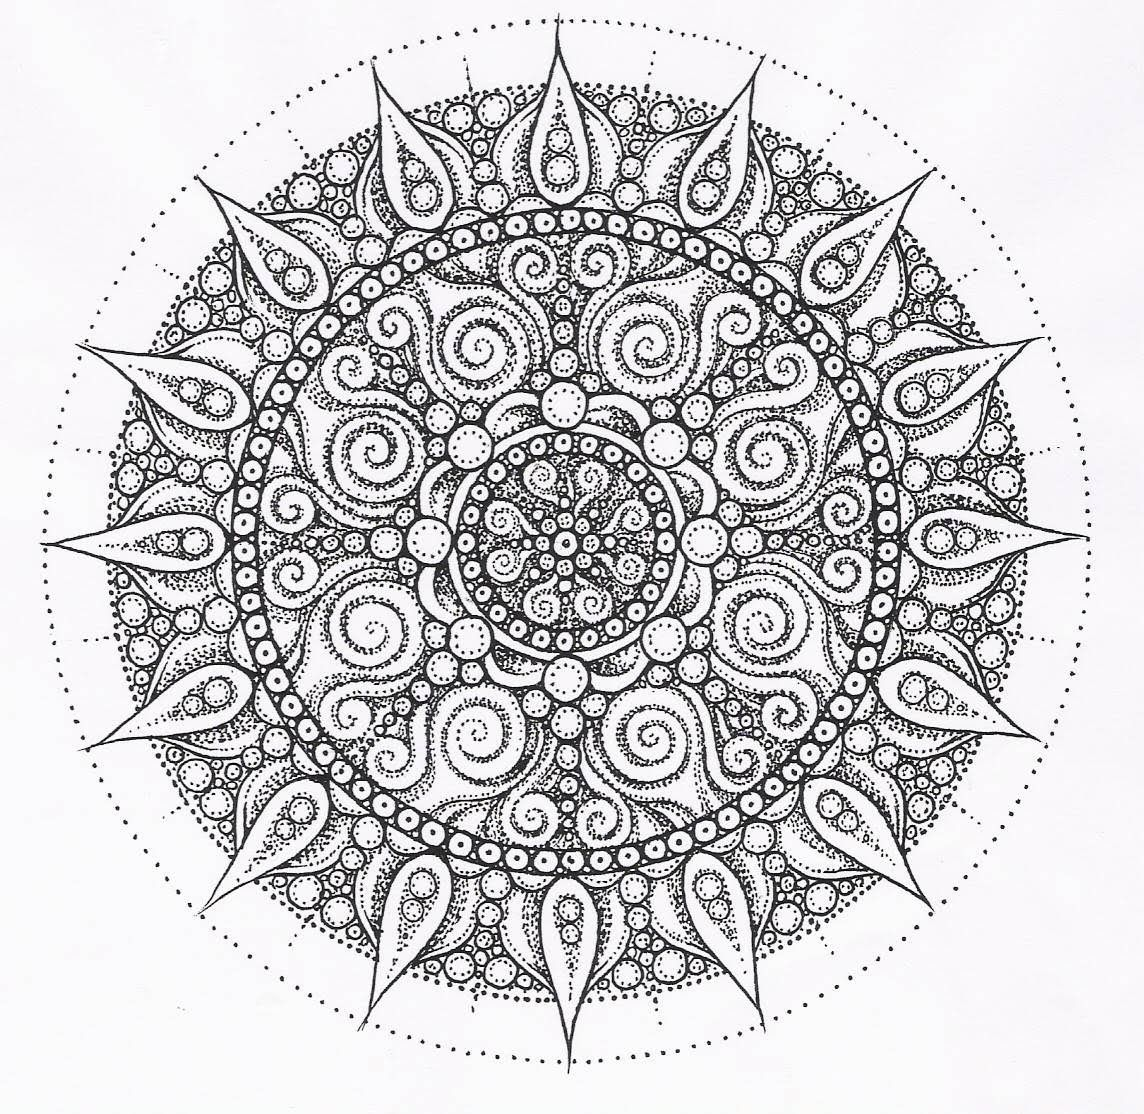 Colouring in pages mandala - Center Yourself With Mandalas Coloring Pages